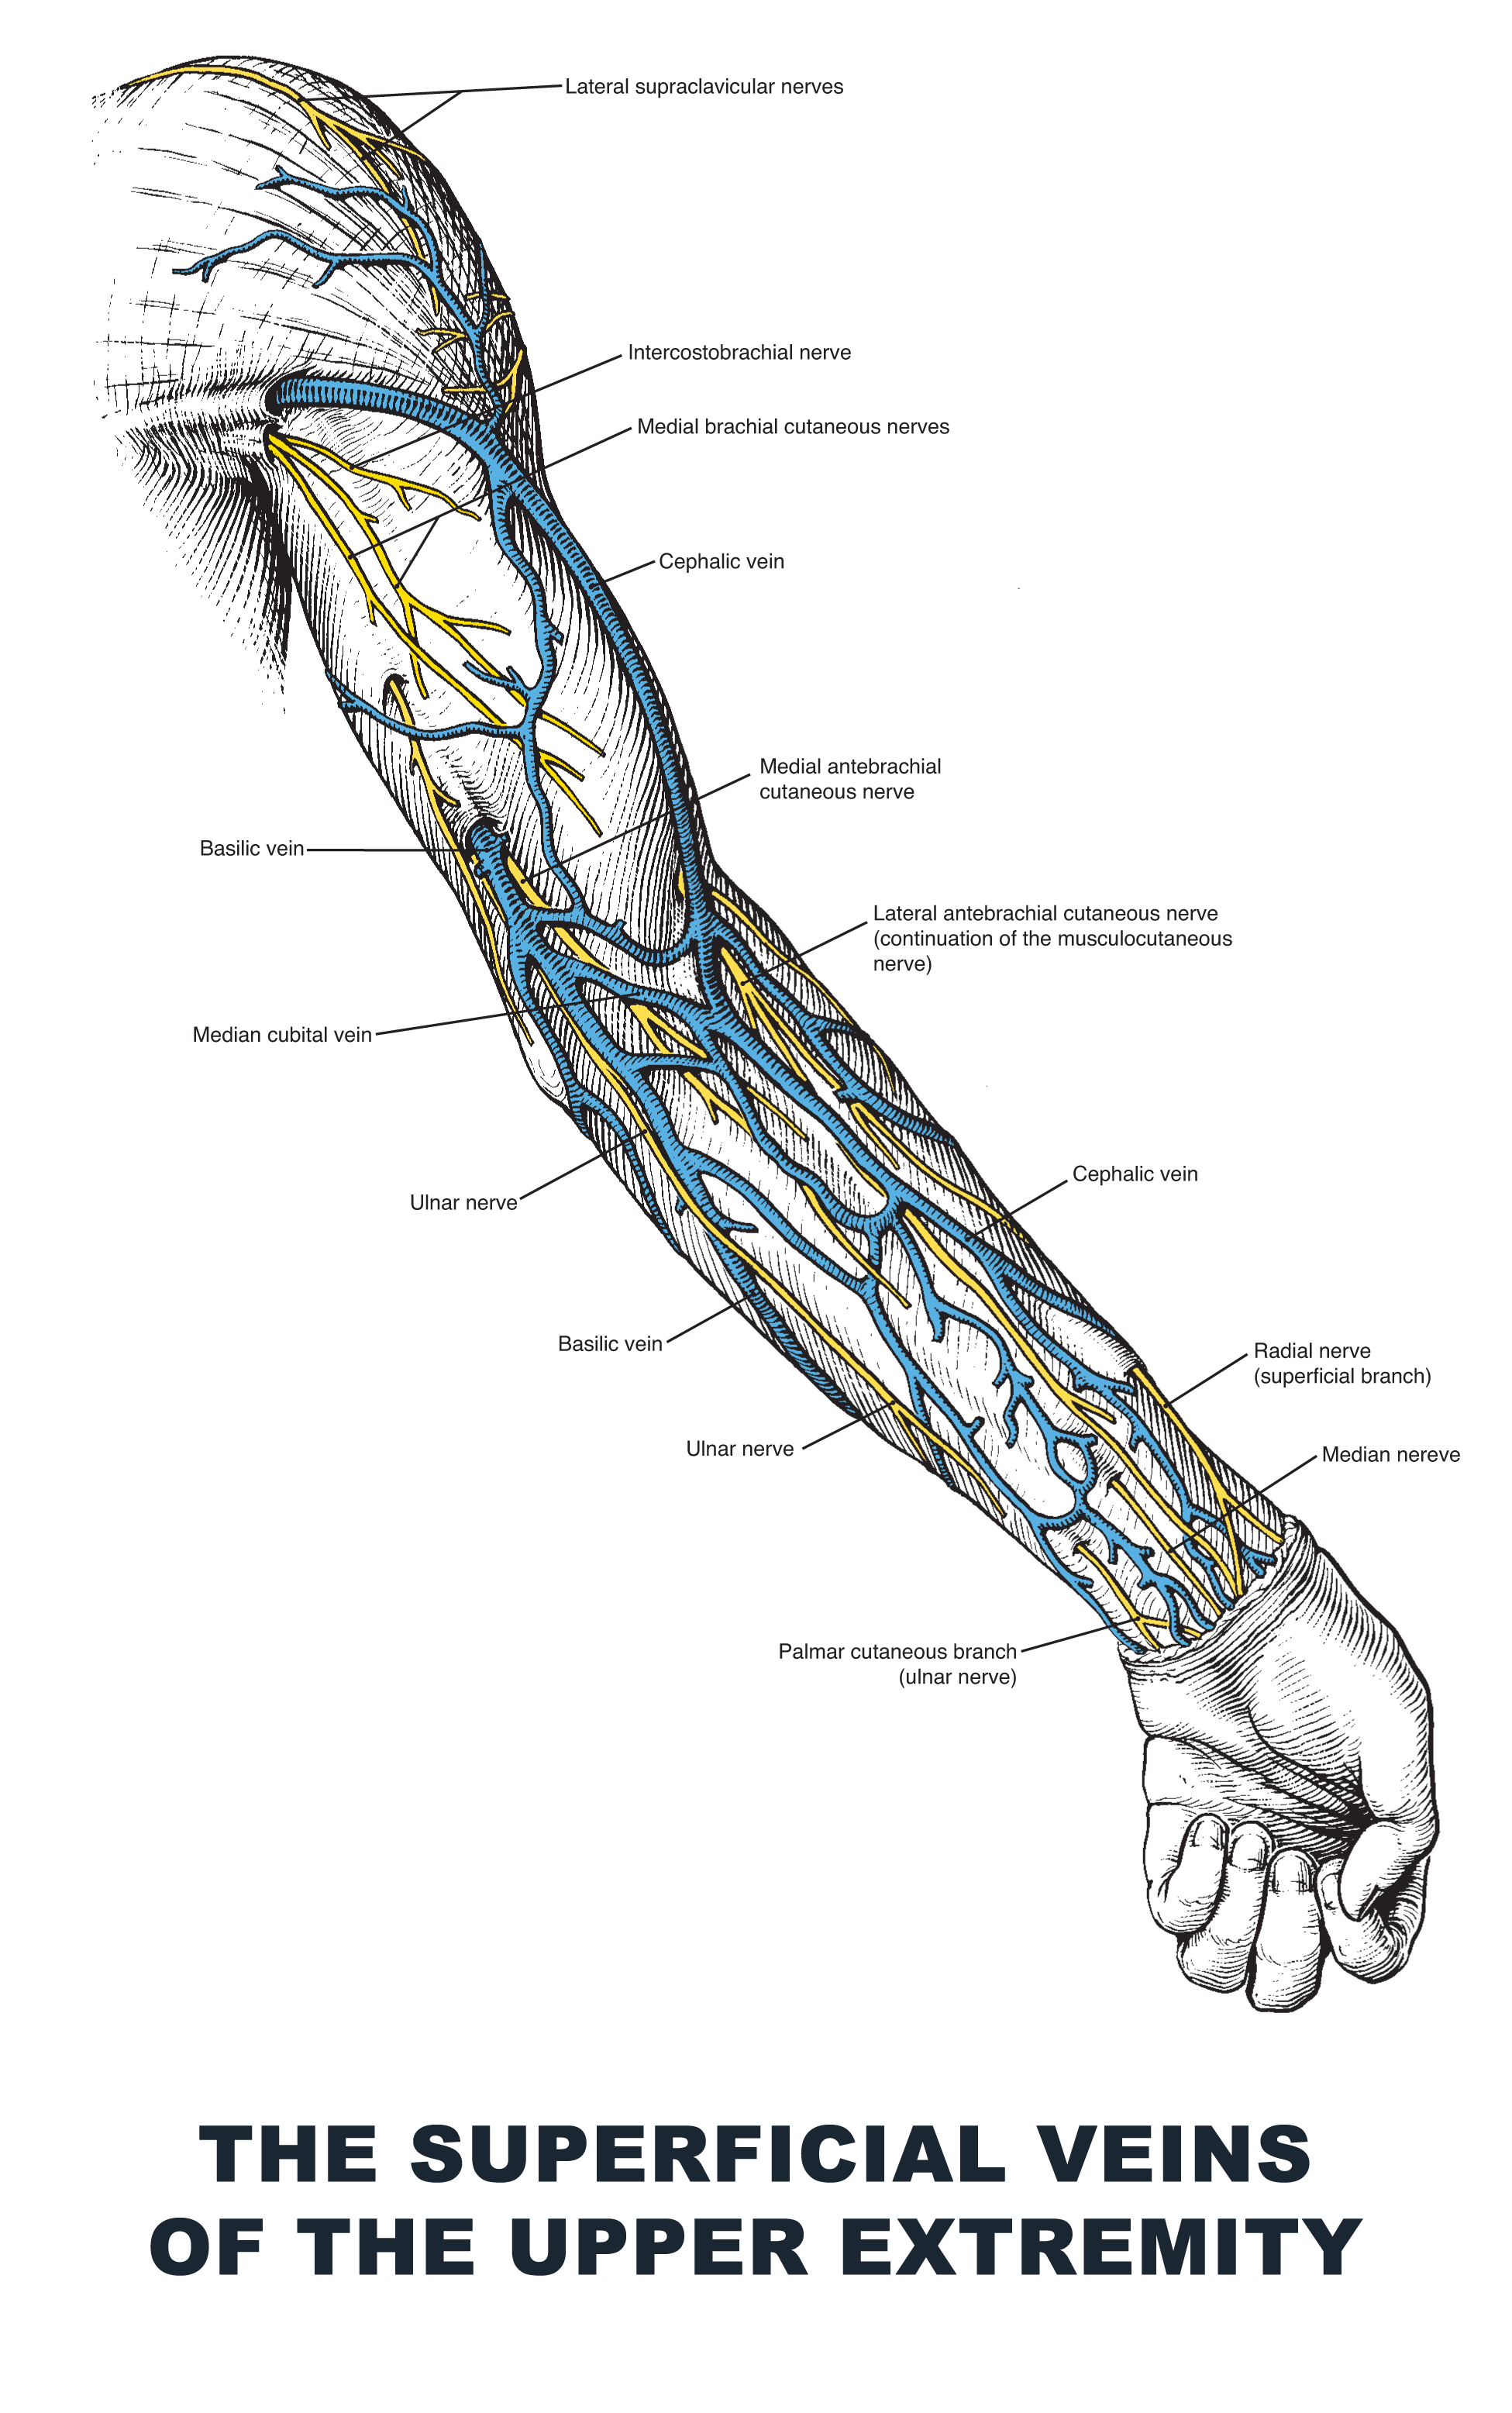 The Superficial Veins of the Upper Extremity - #anatomy images ...